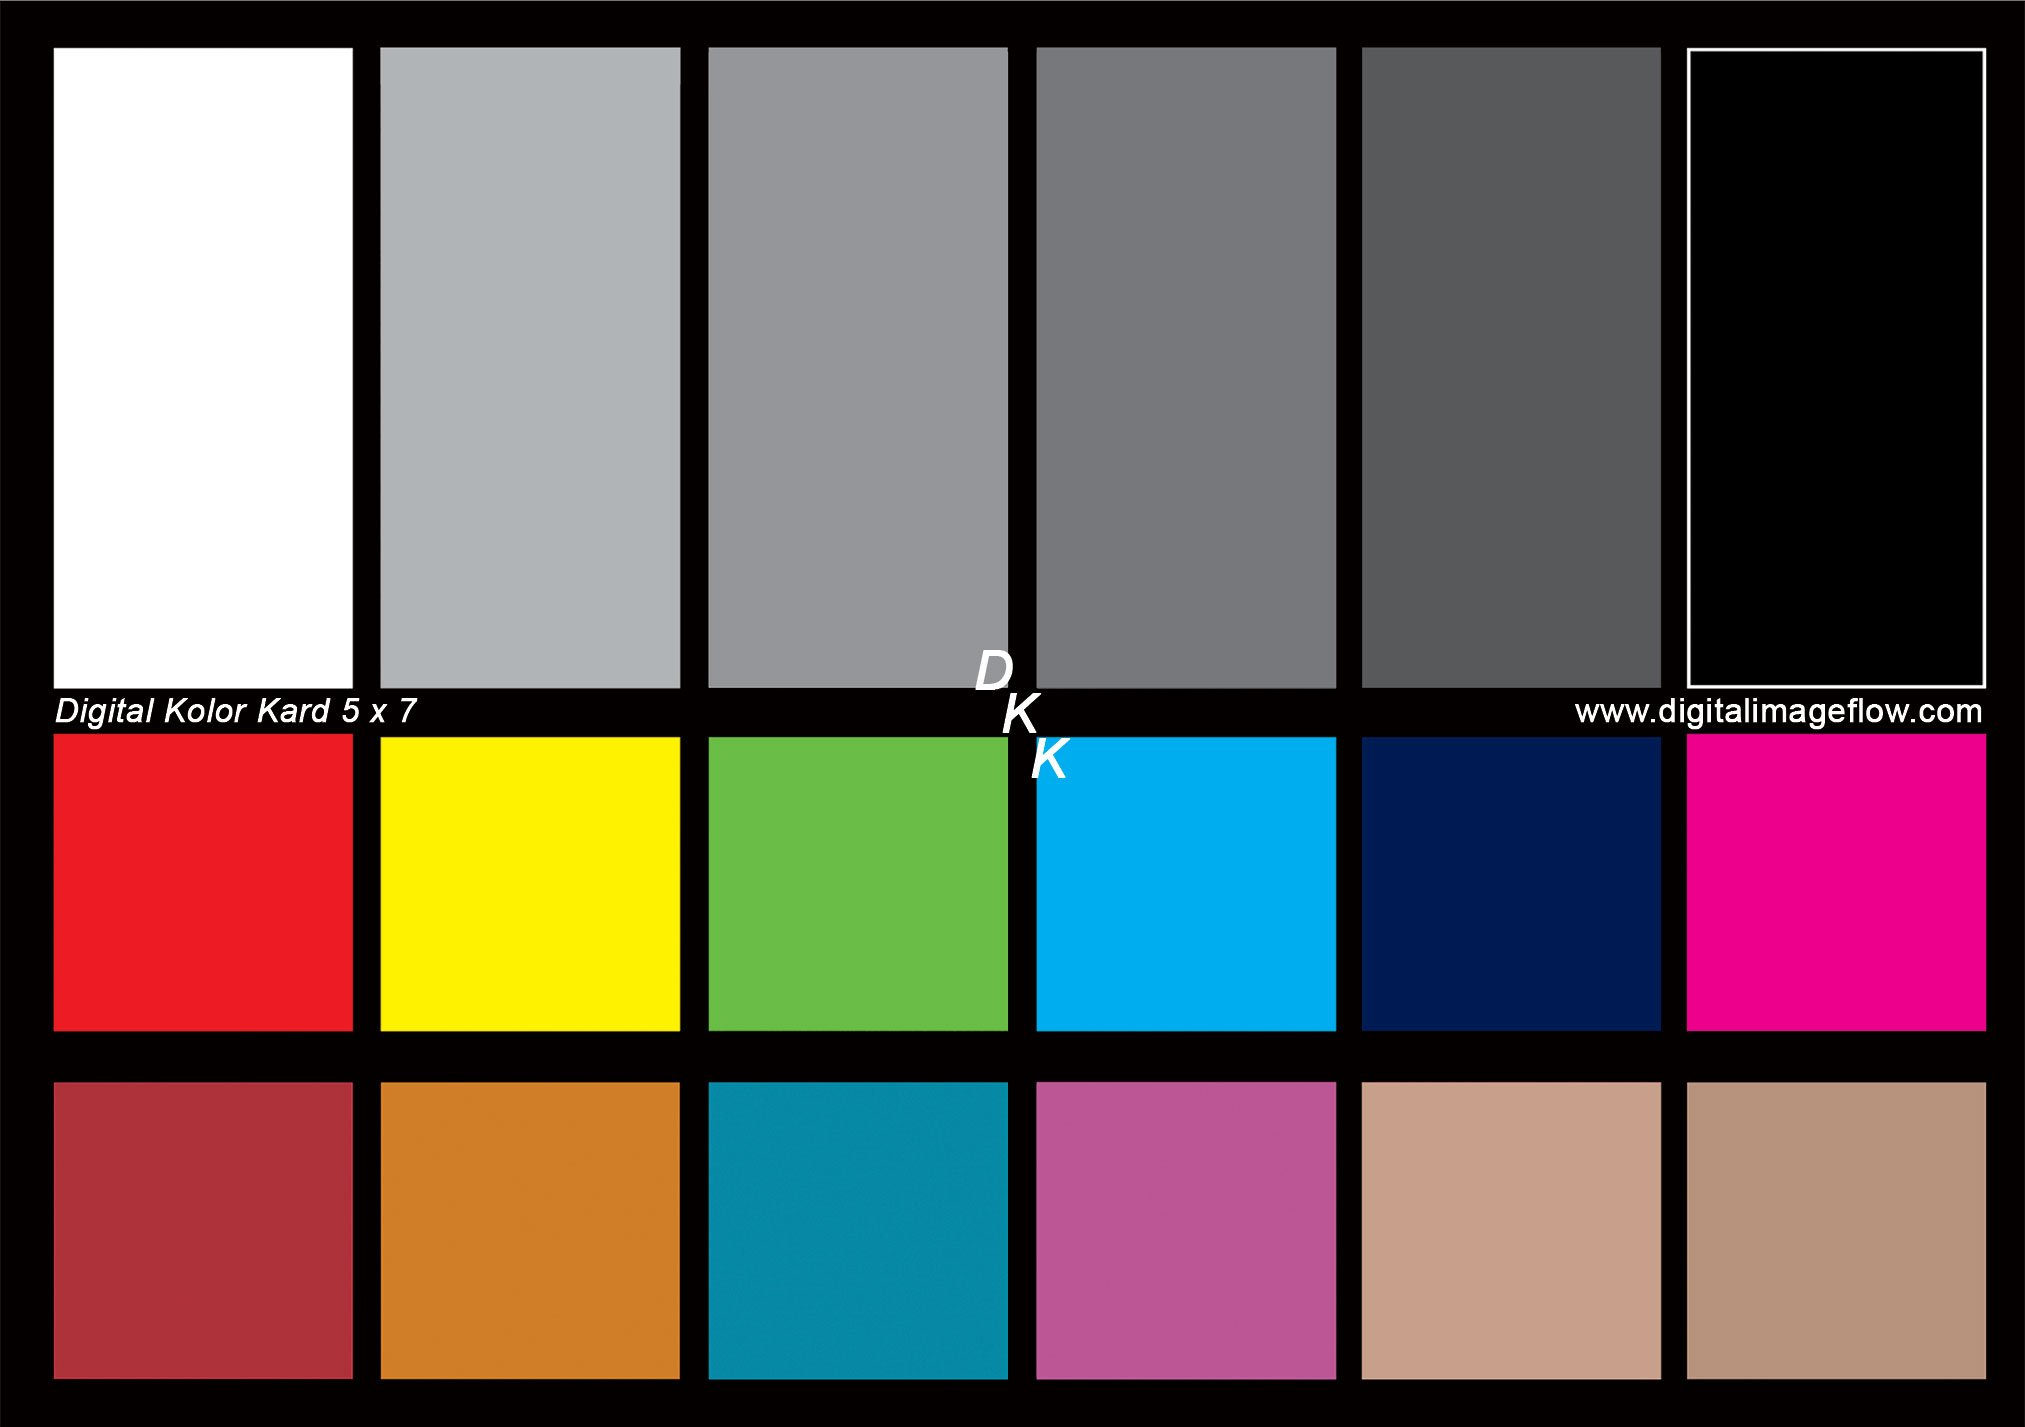 DGK Color Tools DKK 5'' x 7'' Set of 2 White Balance and Color Calibration Charts with 12% and 18% Gray - Includes Frame Stand and User Guide